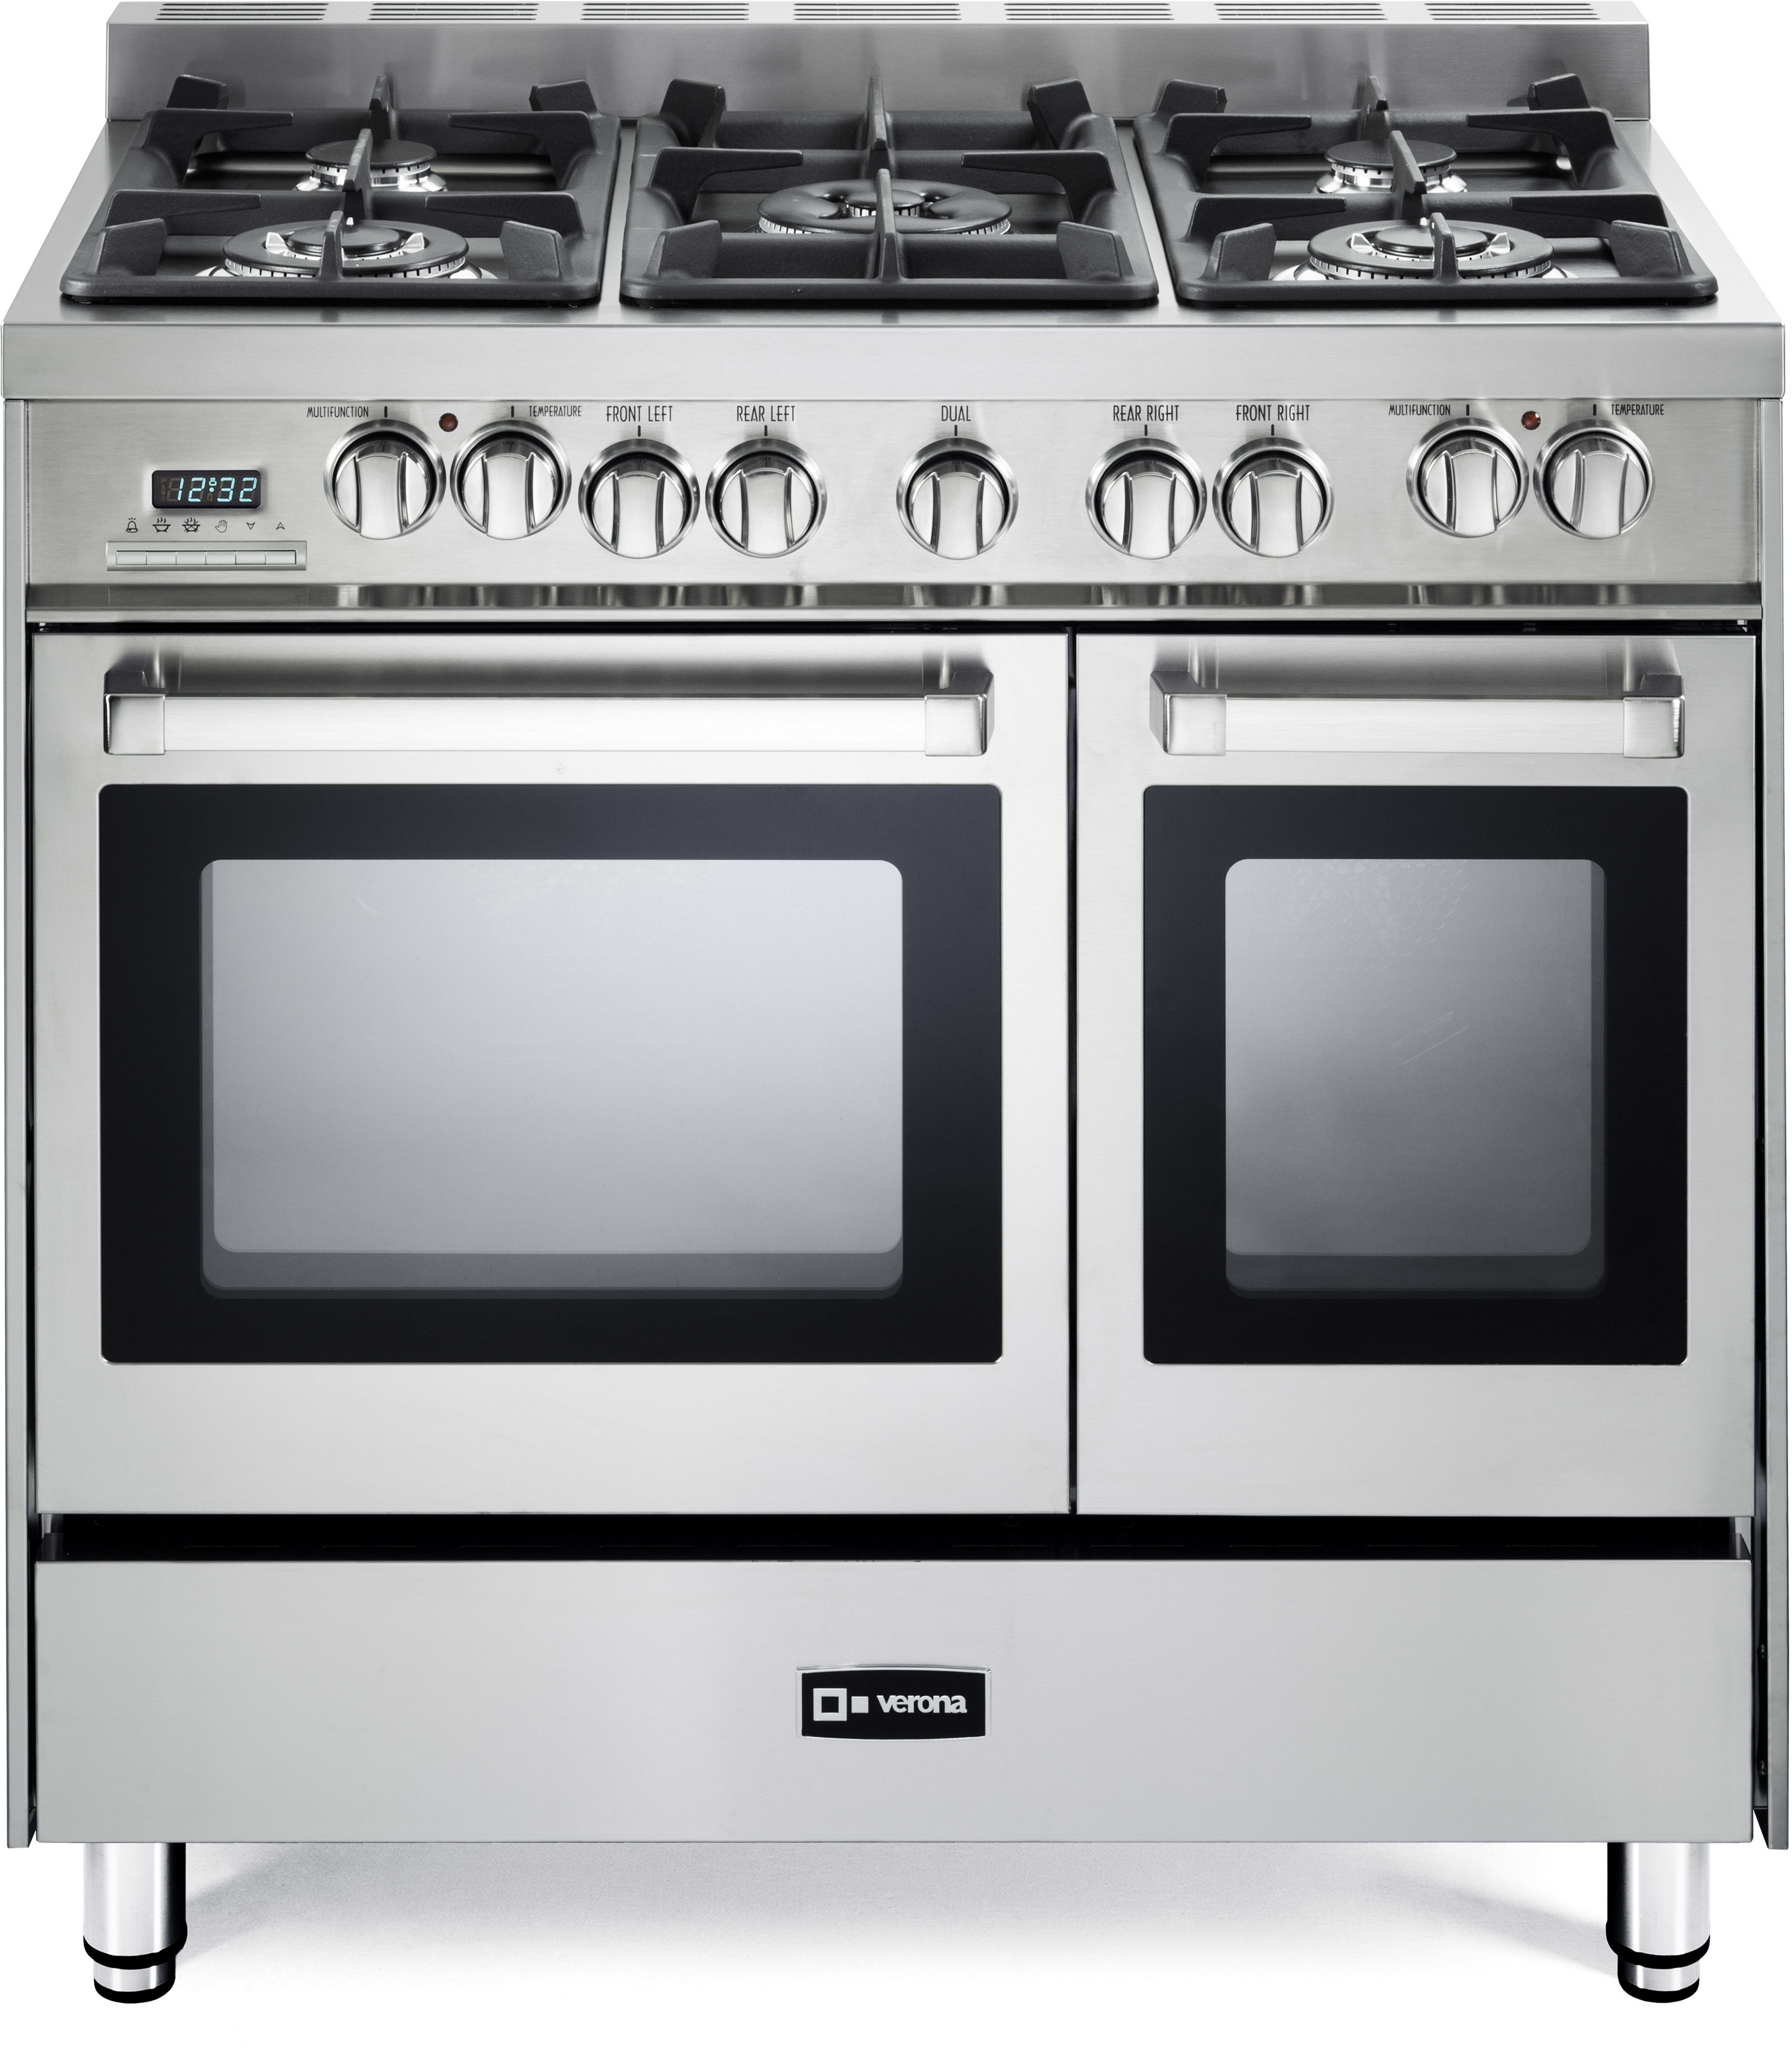 verona vefsge365ndss 36 inch pro style dual fuel double oven range with 5 sealed burners 3 9 cu. Black Bedroom Furniture Sets. Home Design Ideas